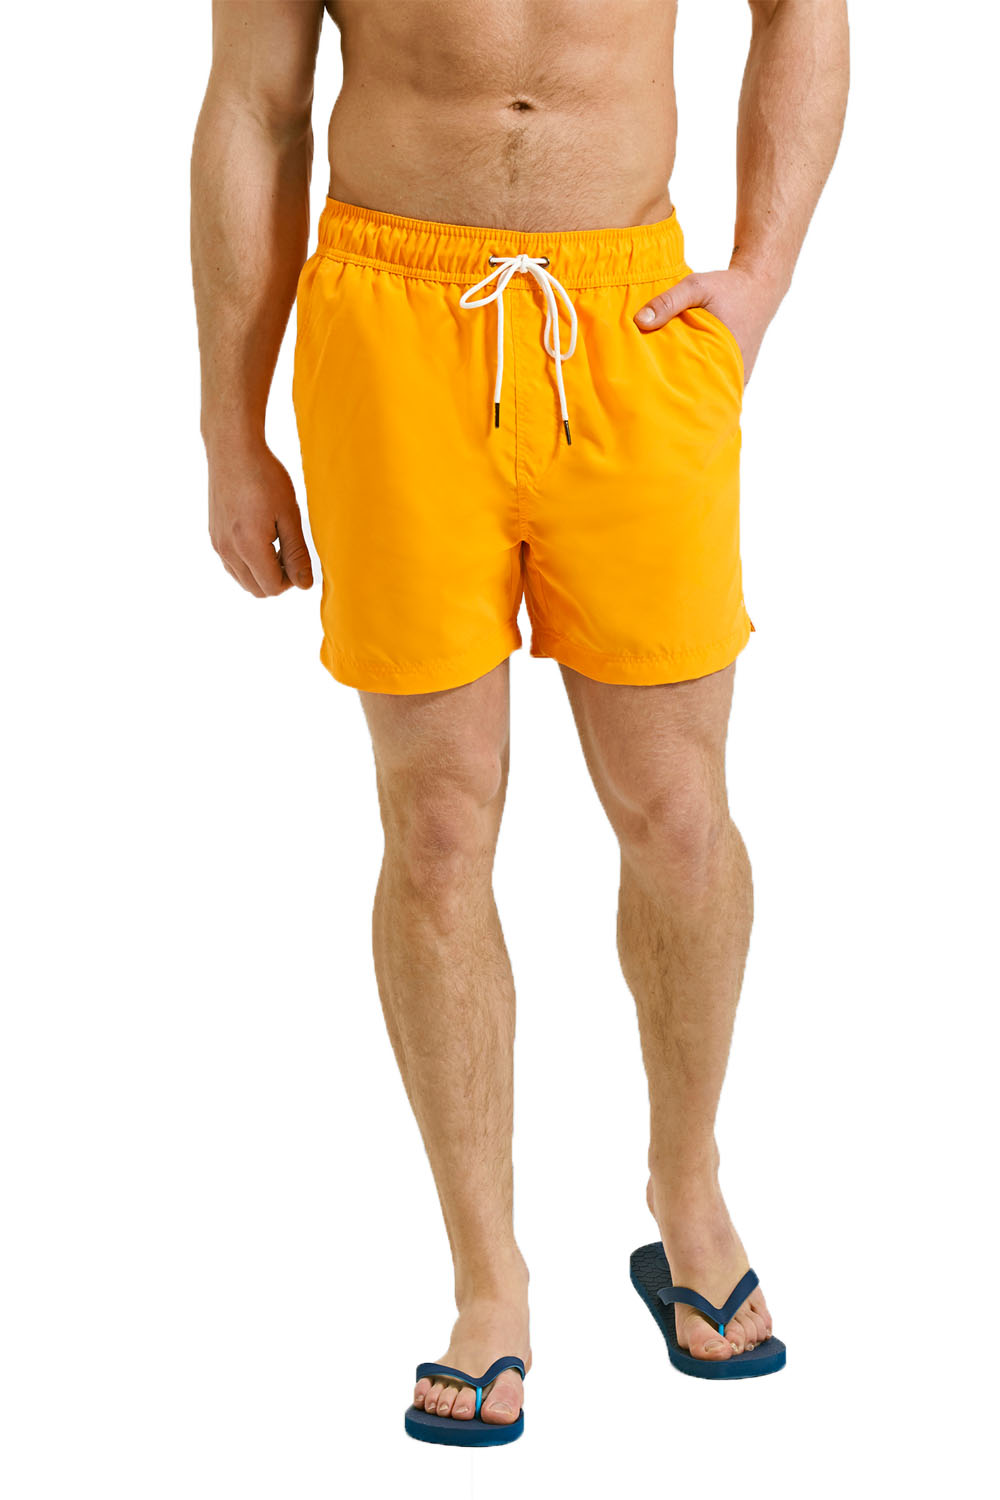 ffd27426a3 Mens Threadbare Swim Shorts Mesh Lined Knee Length Beach Board ...